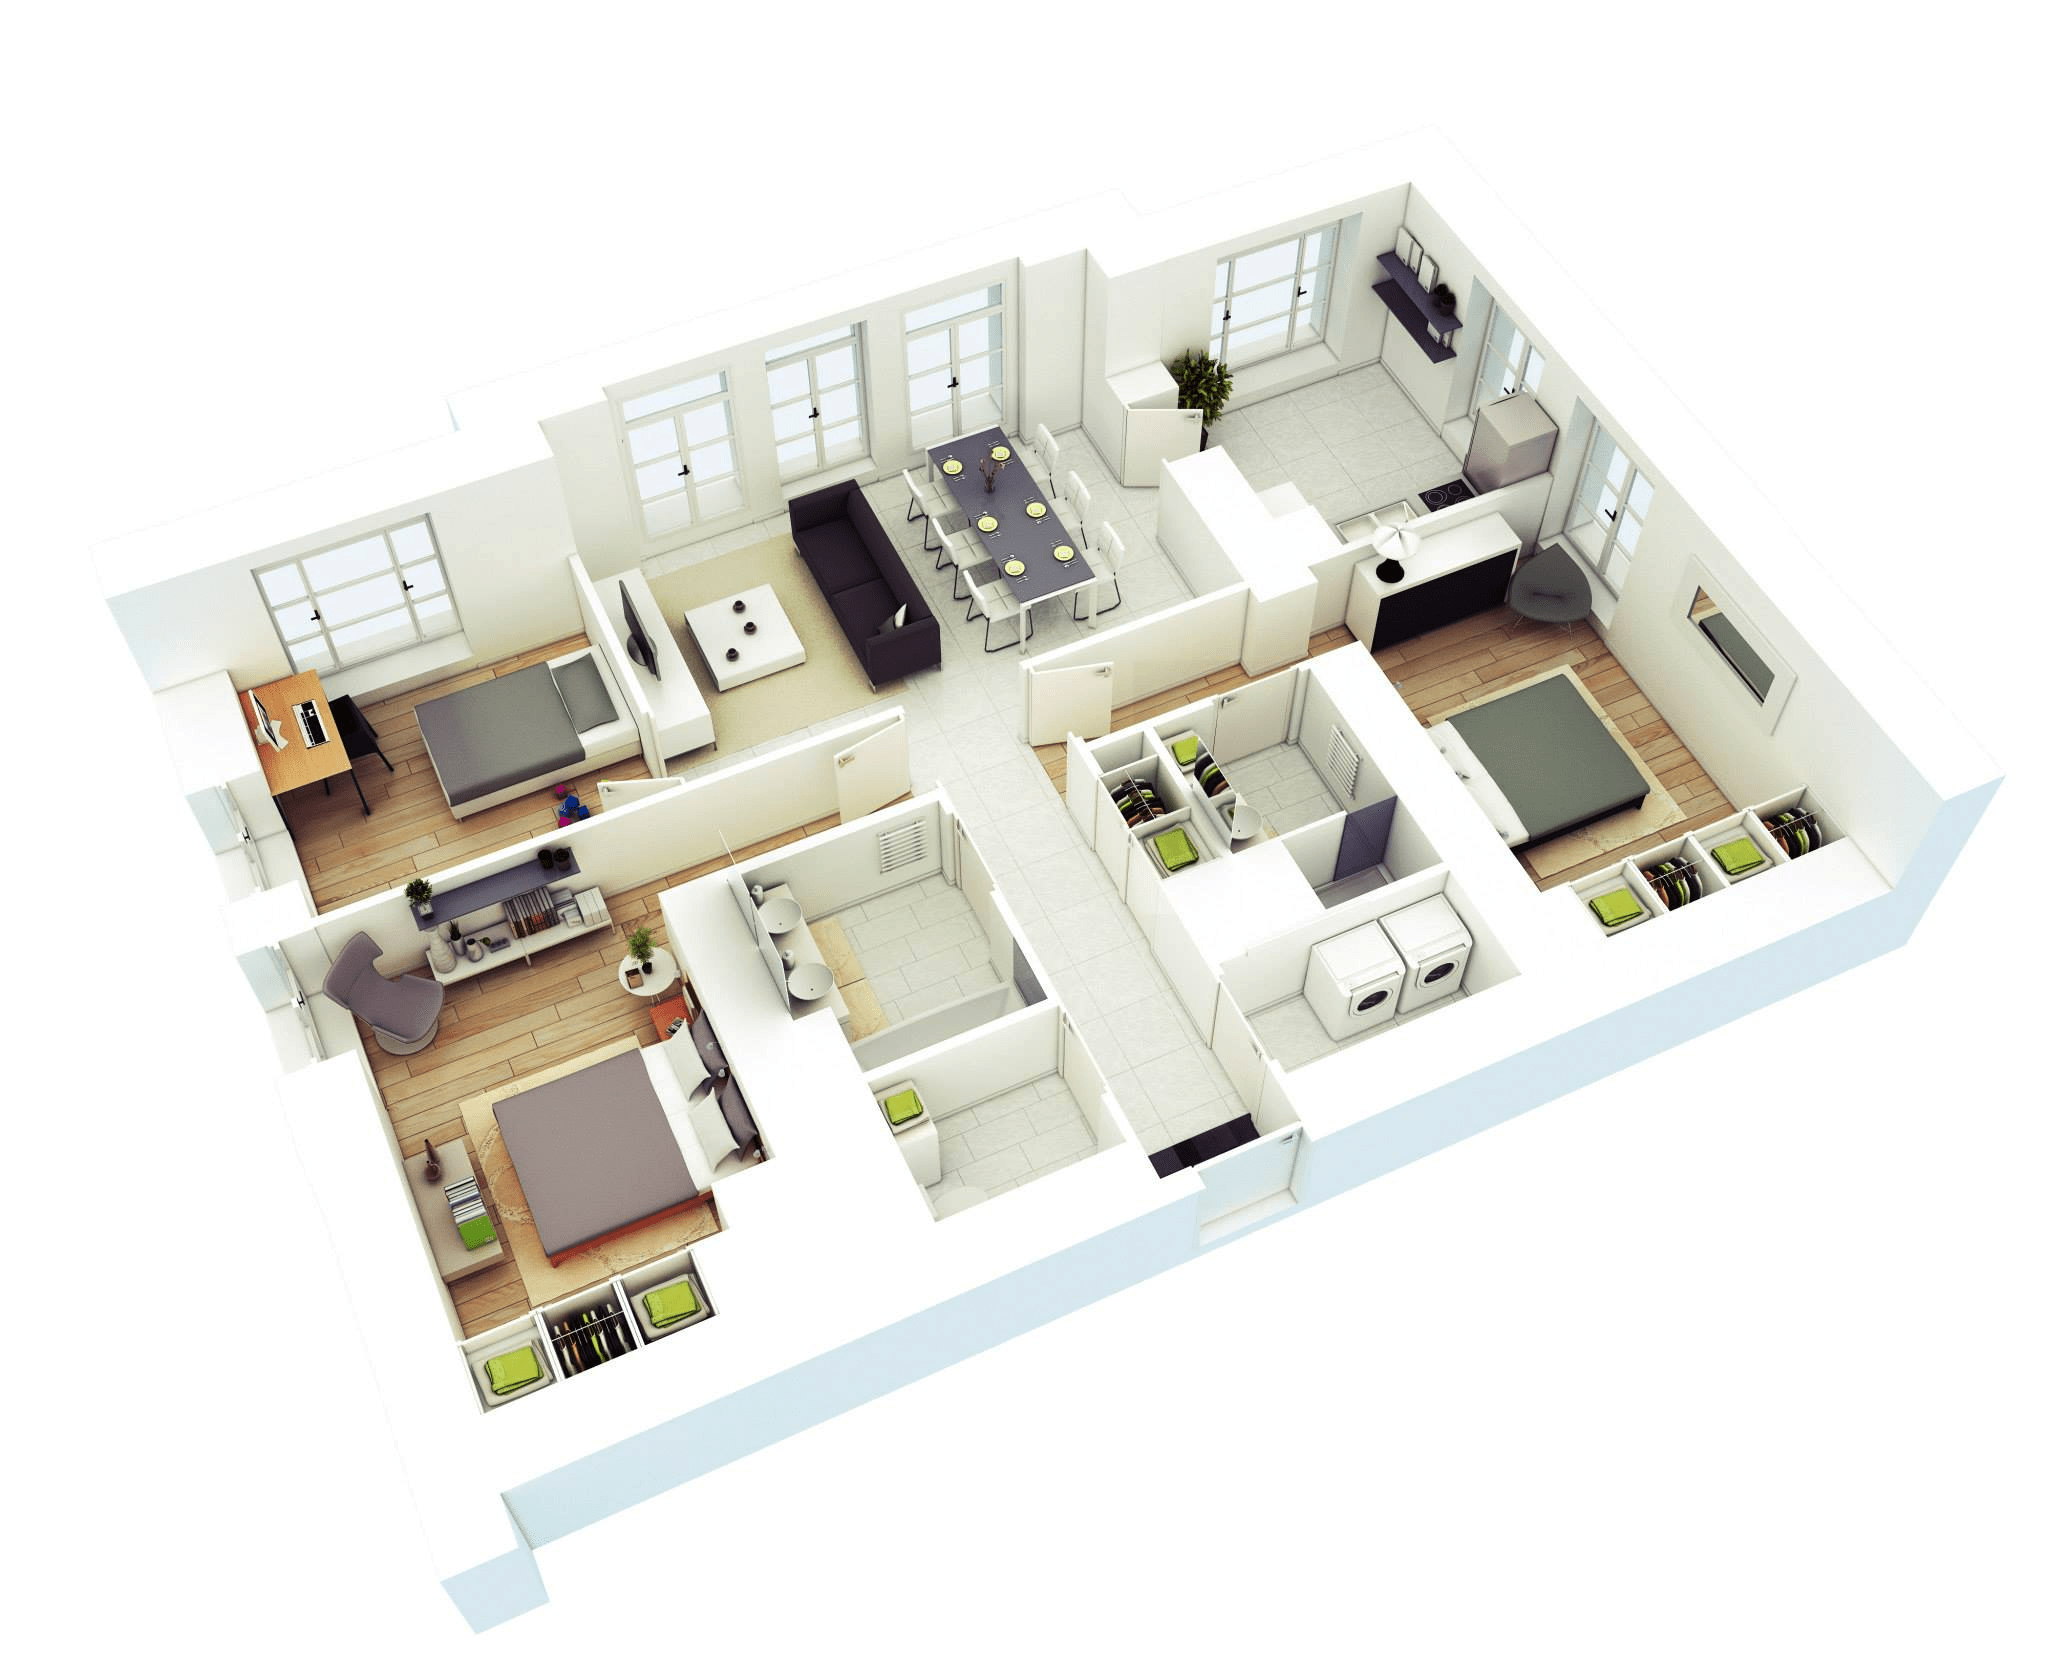 Apartment With 3 Bedroom 3D House Floor Plans With Master Bedroom (Image 7 of 11)